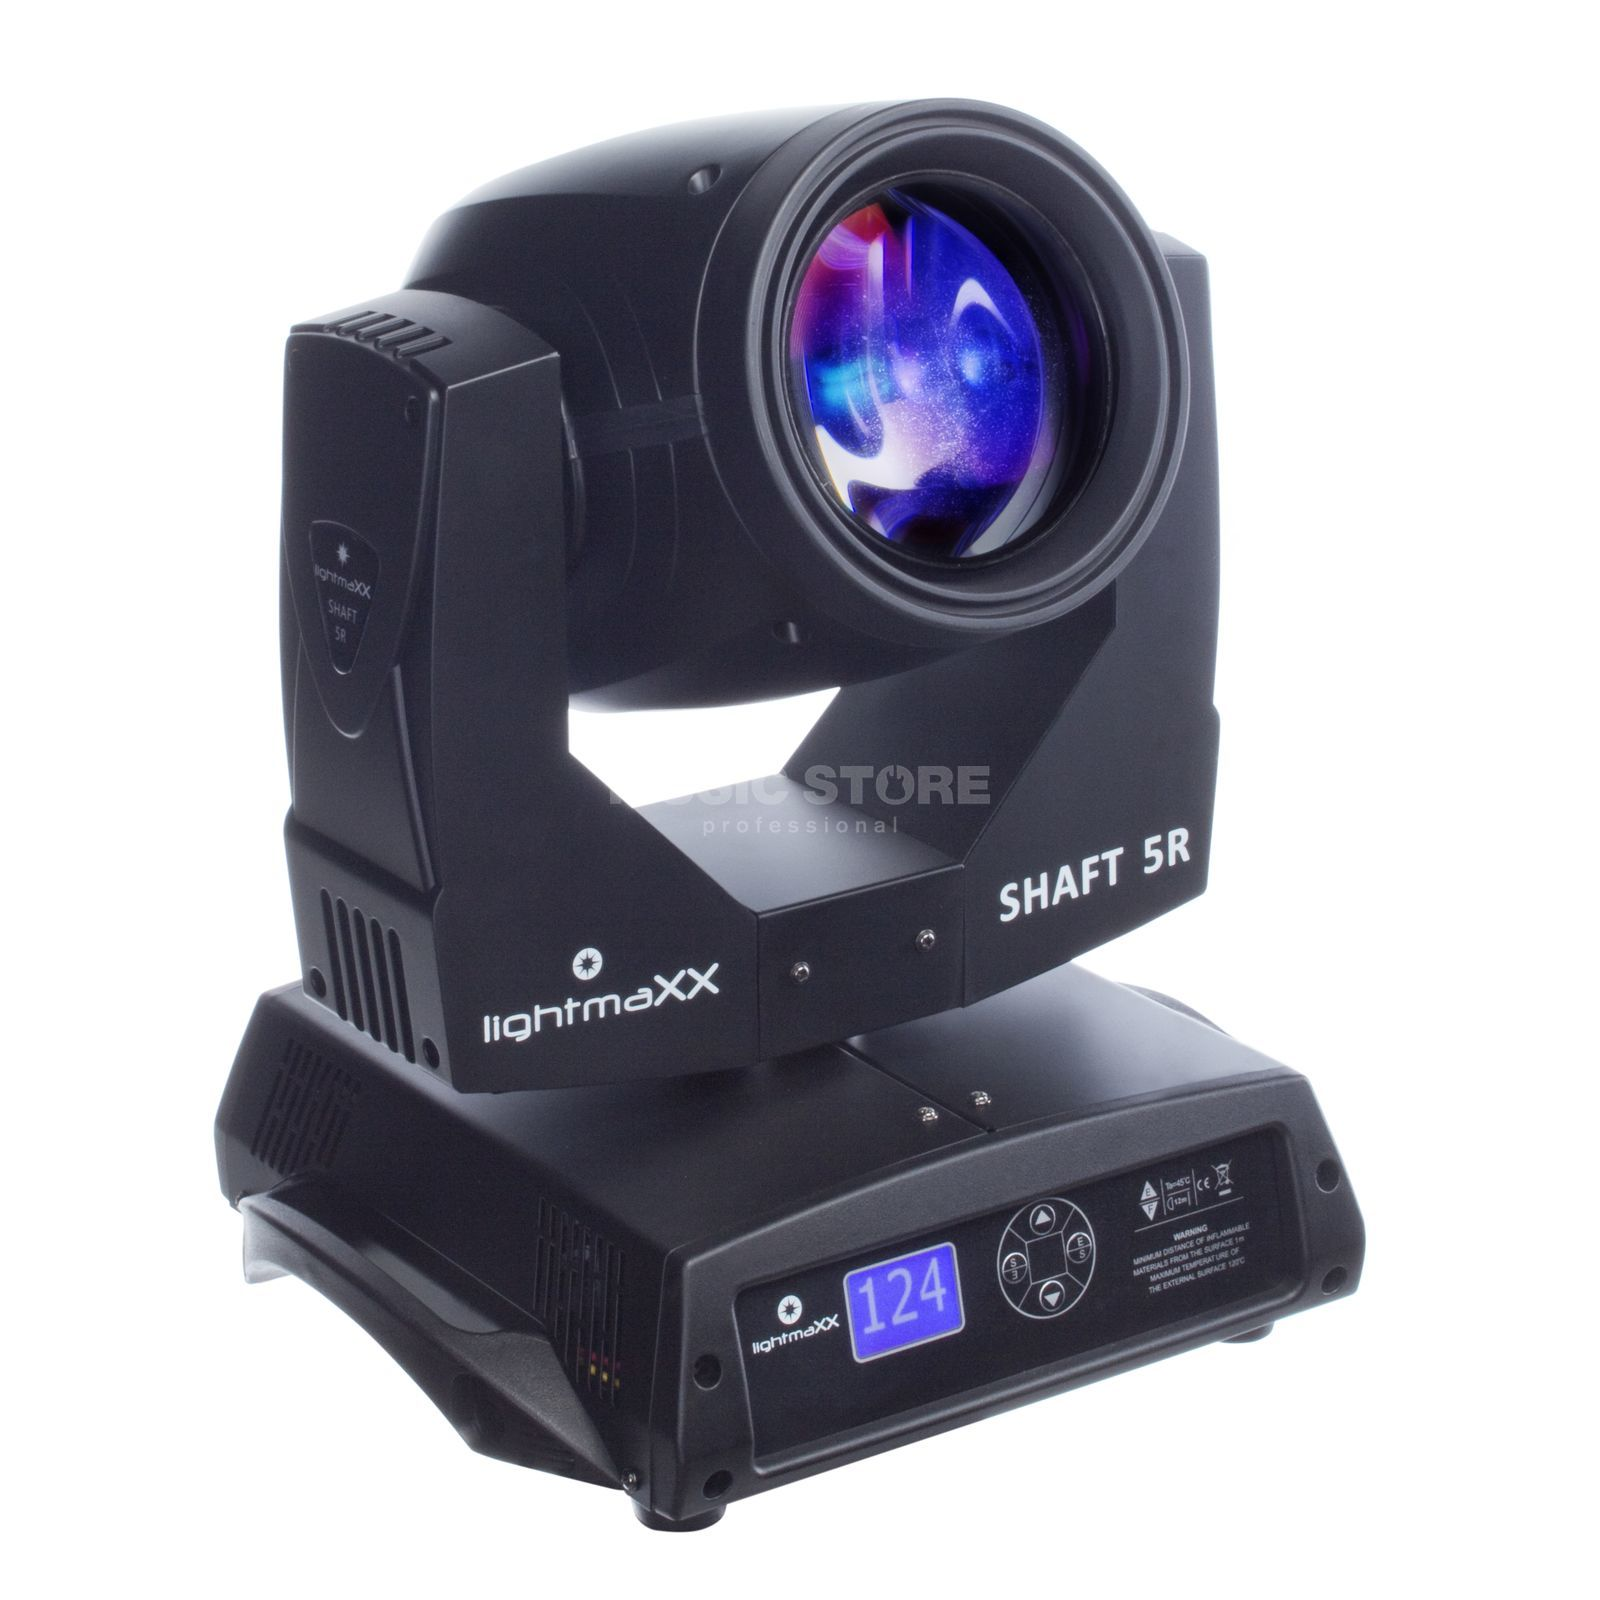 lightmaXX SHAFT 5R Beam Moving-Head im Karton Imagen del producto